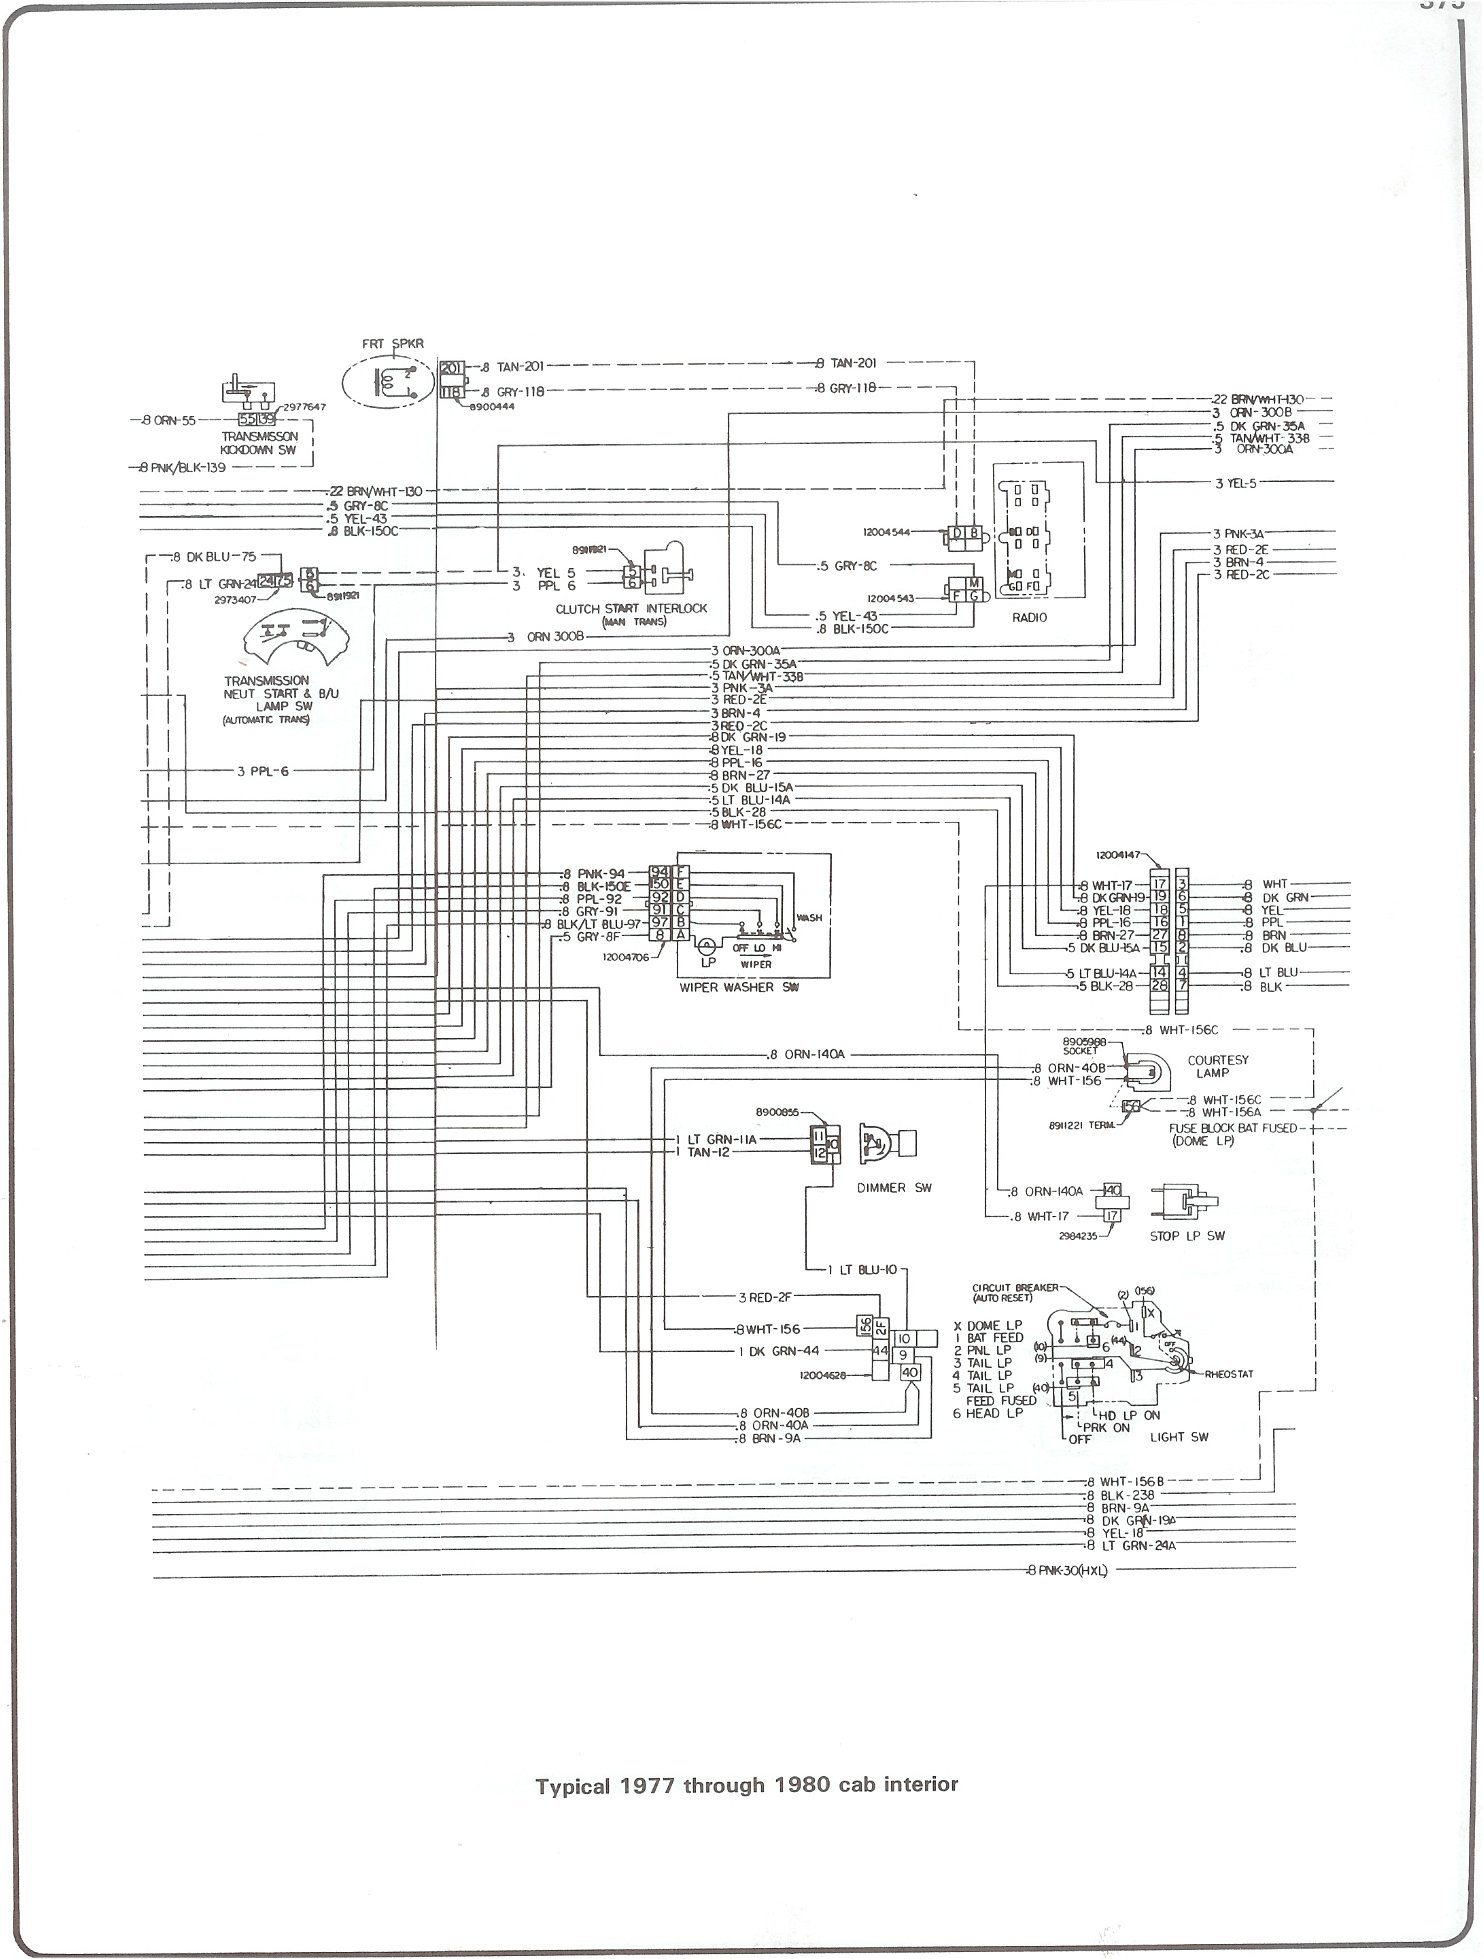 small resolution of wiring diagram 1980 volare wiring diagrams76 volare wiring diagrams today wiring diagram pontiac volare 1977 plymouth